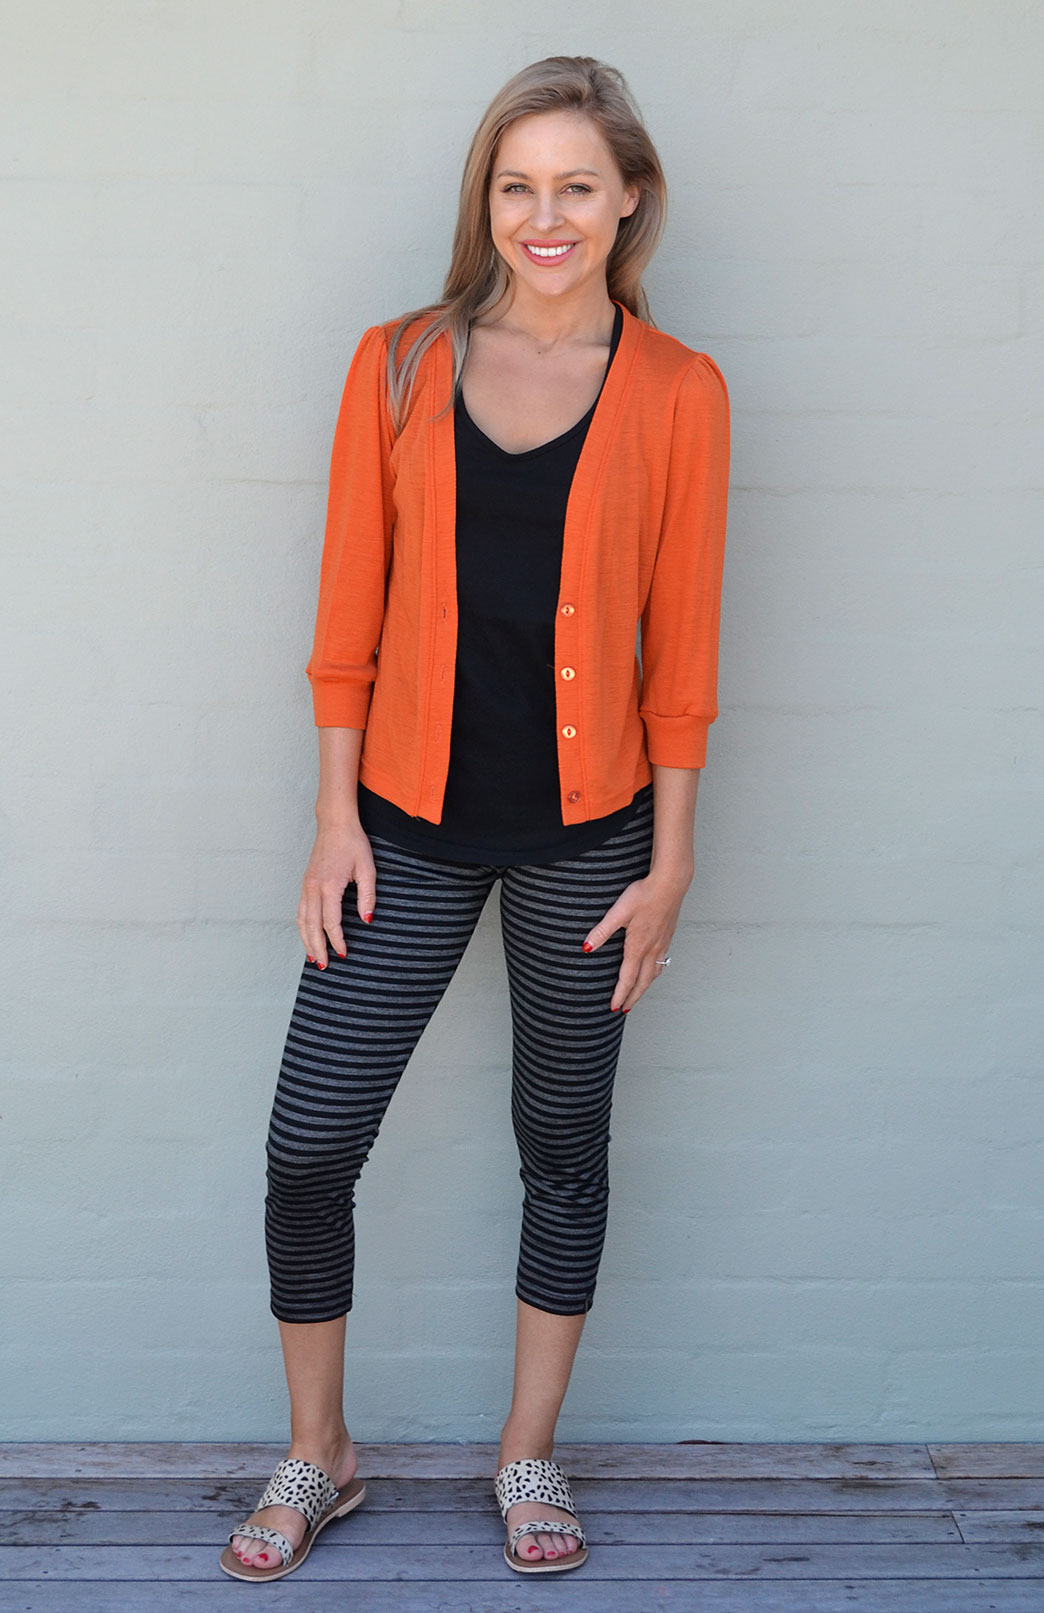 Crop Cardigan - 3/4 Sleeve - Women's Orange Cropped Cardigan with 3/4 Sleeves and Buttons - Smitten Merino Tasmania Australia